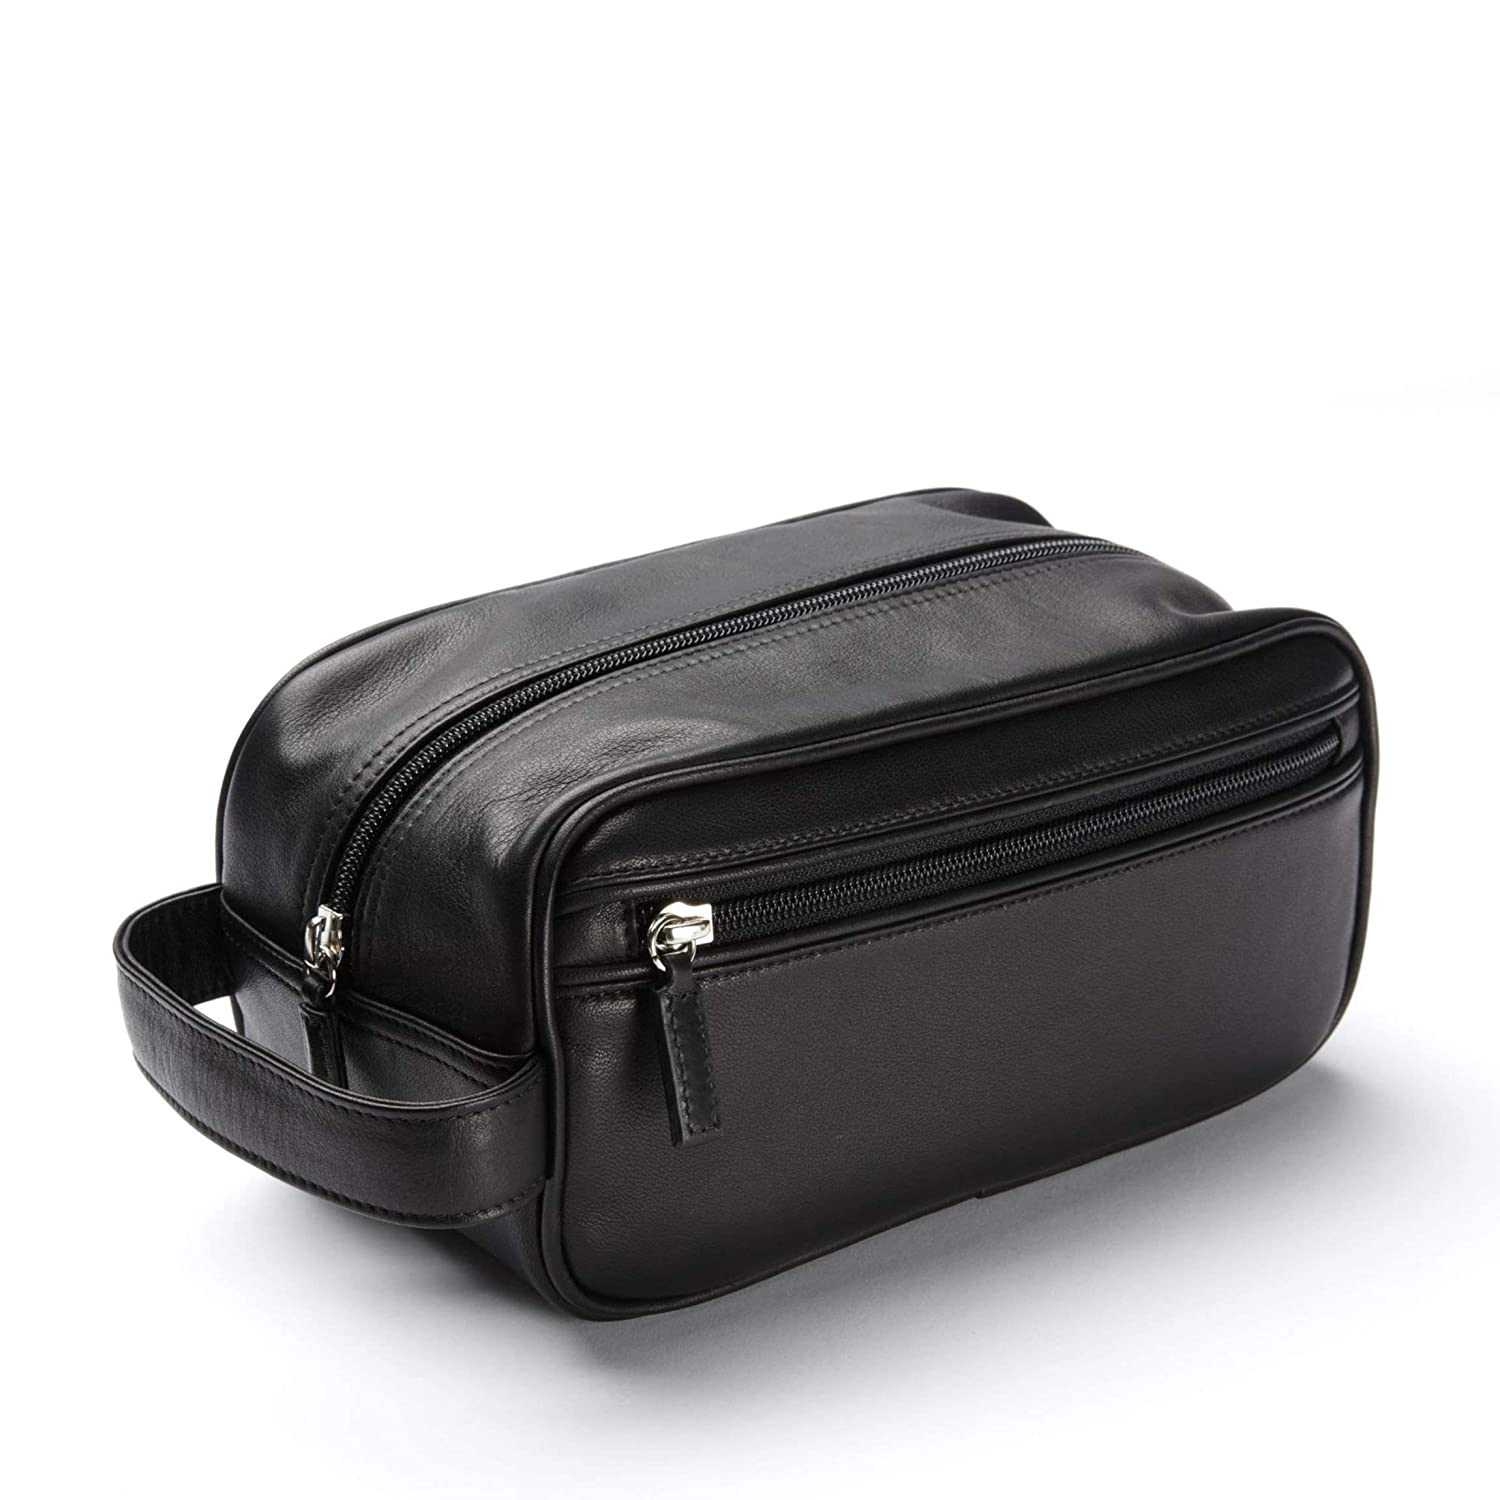 Leatherology Black Onyx Small Shave Toiletry Bag